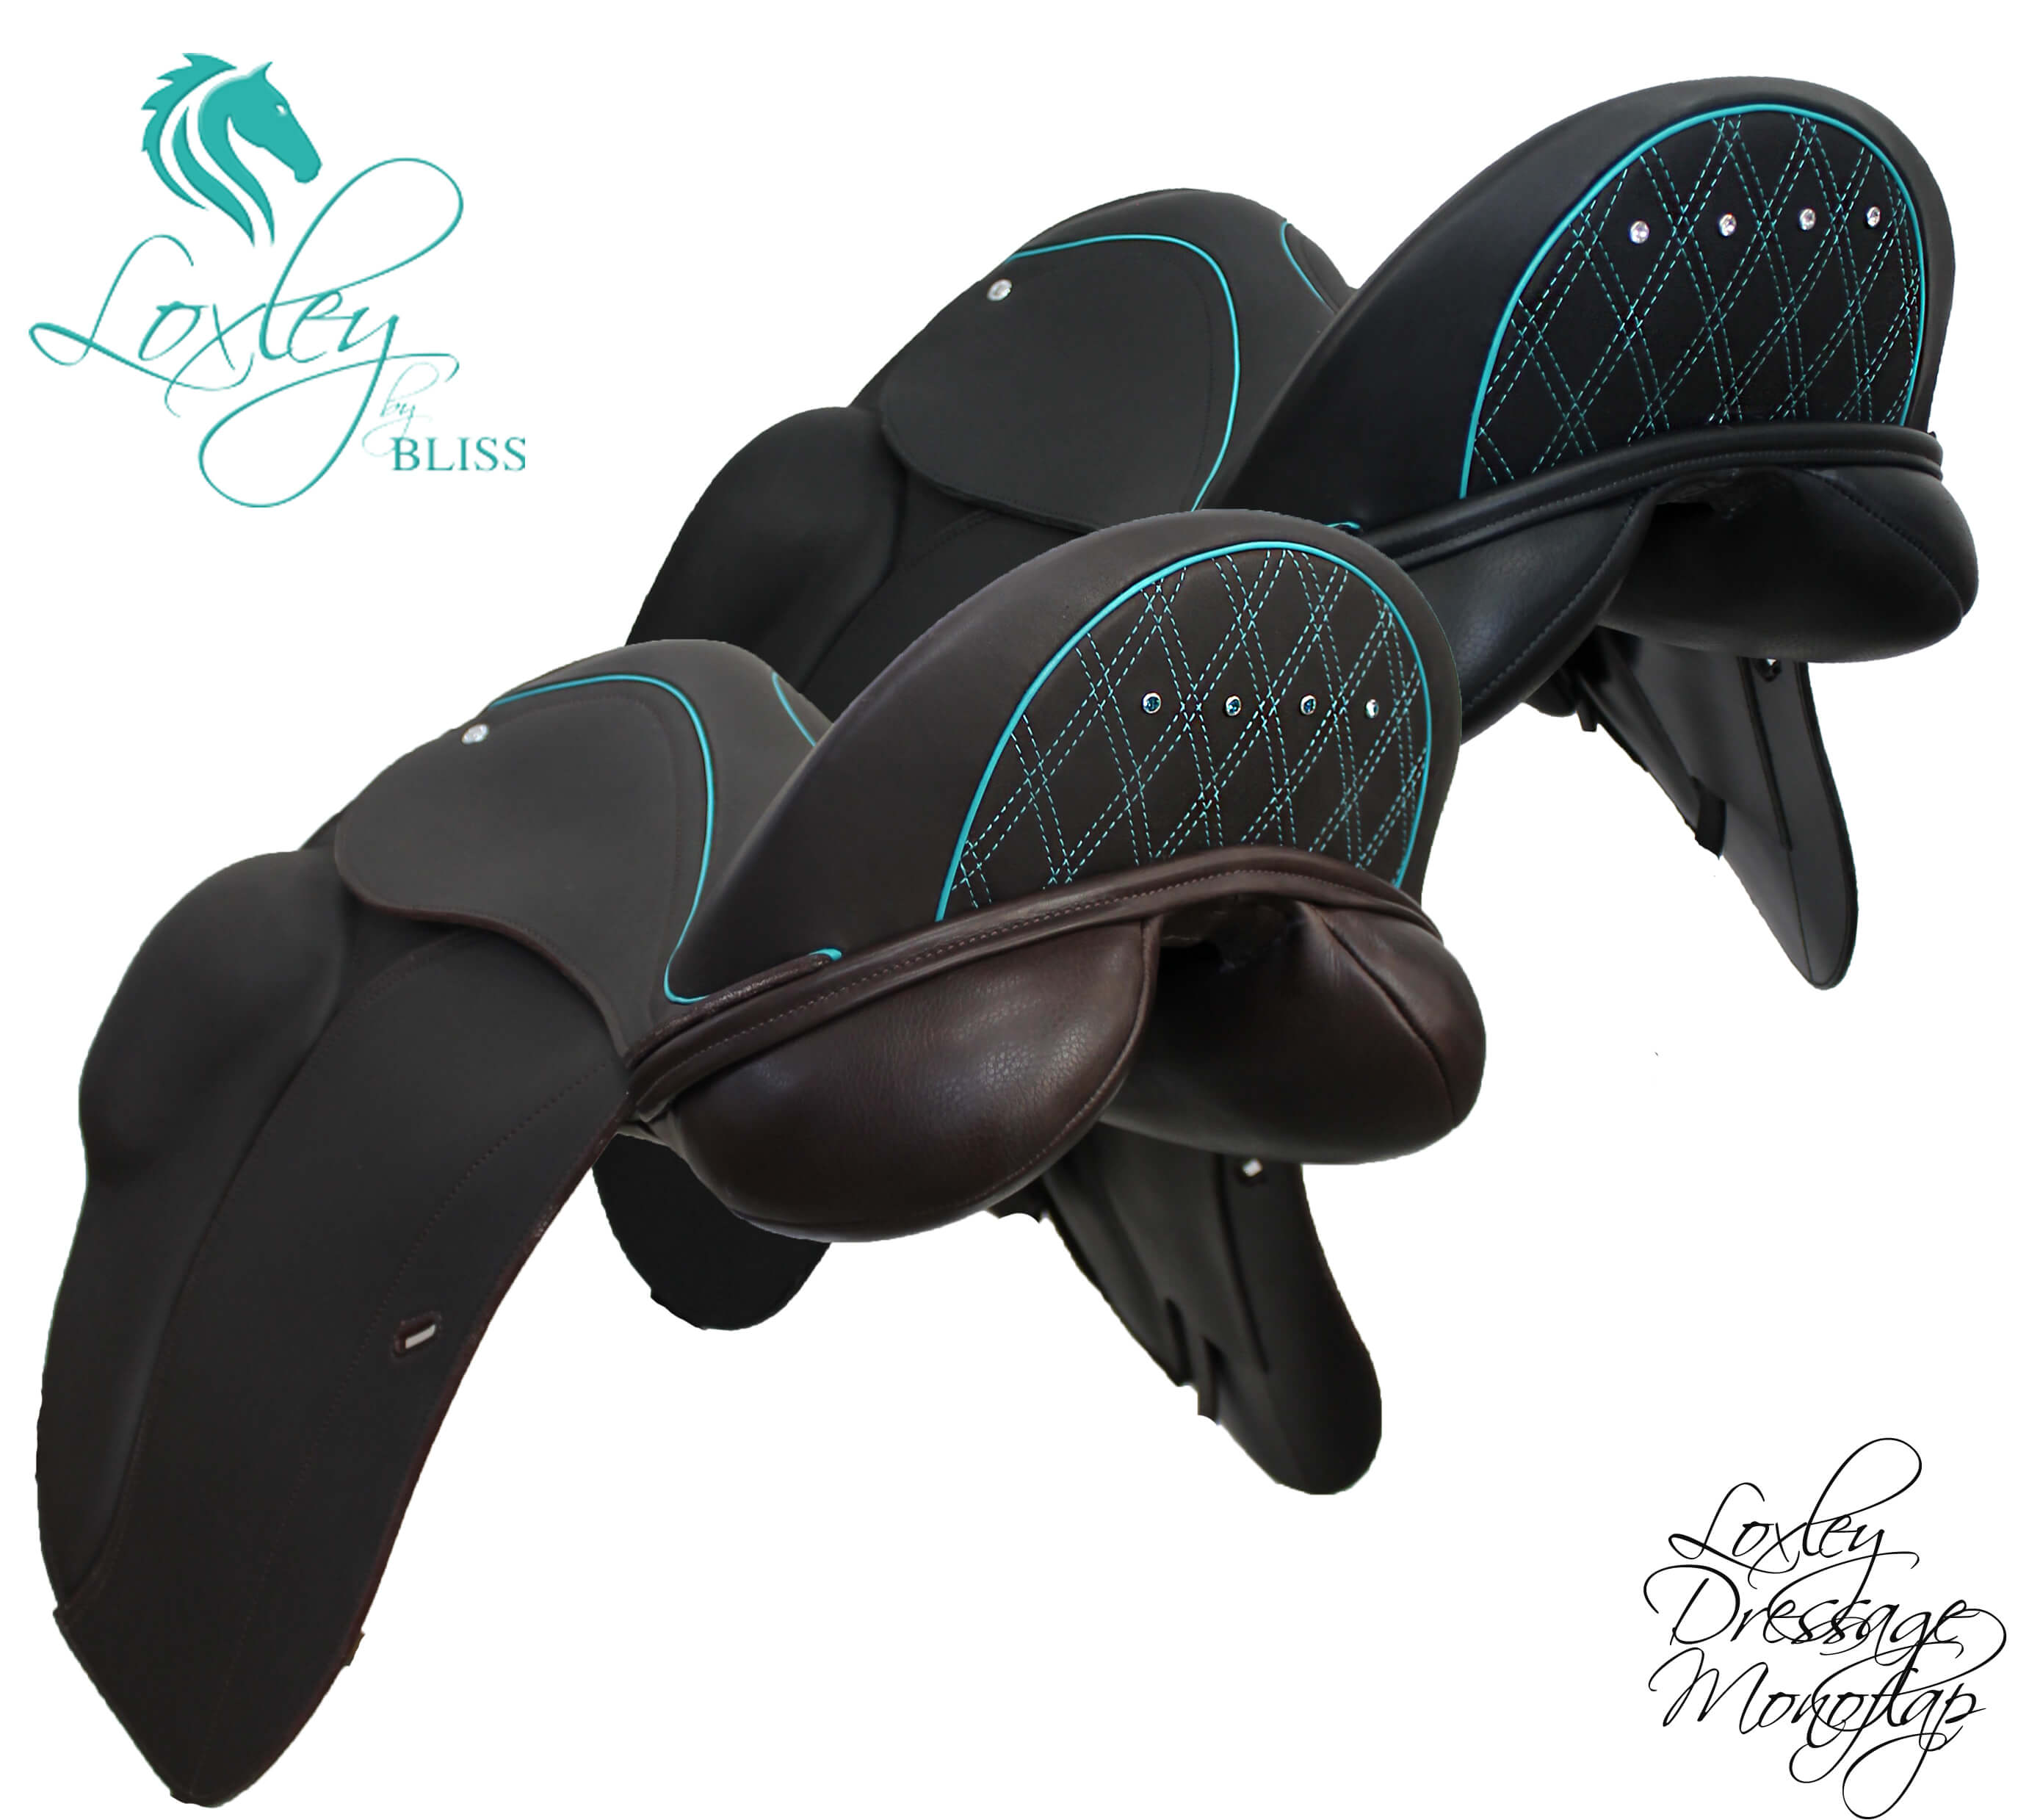 Loxley Saddle Image Template rear angle